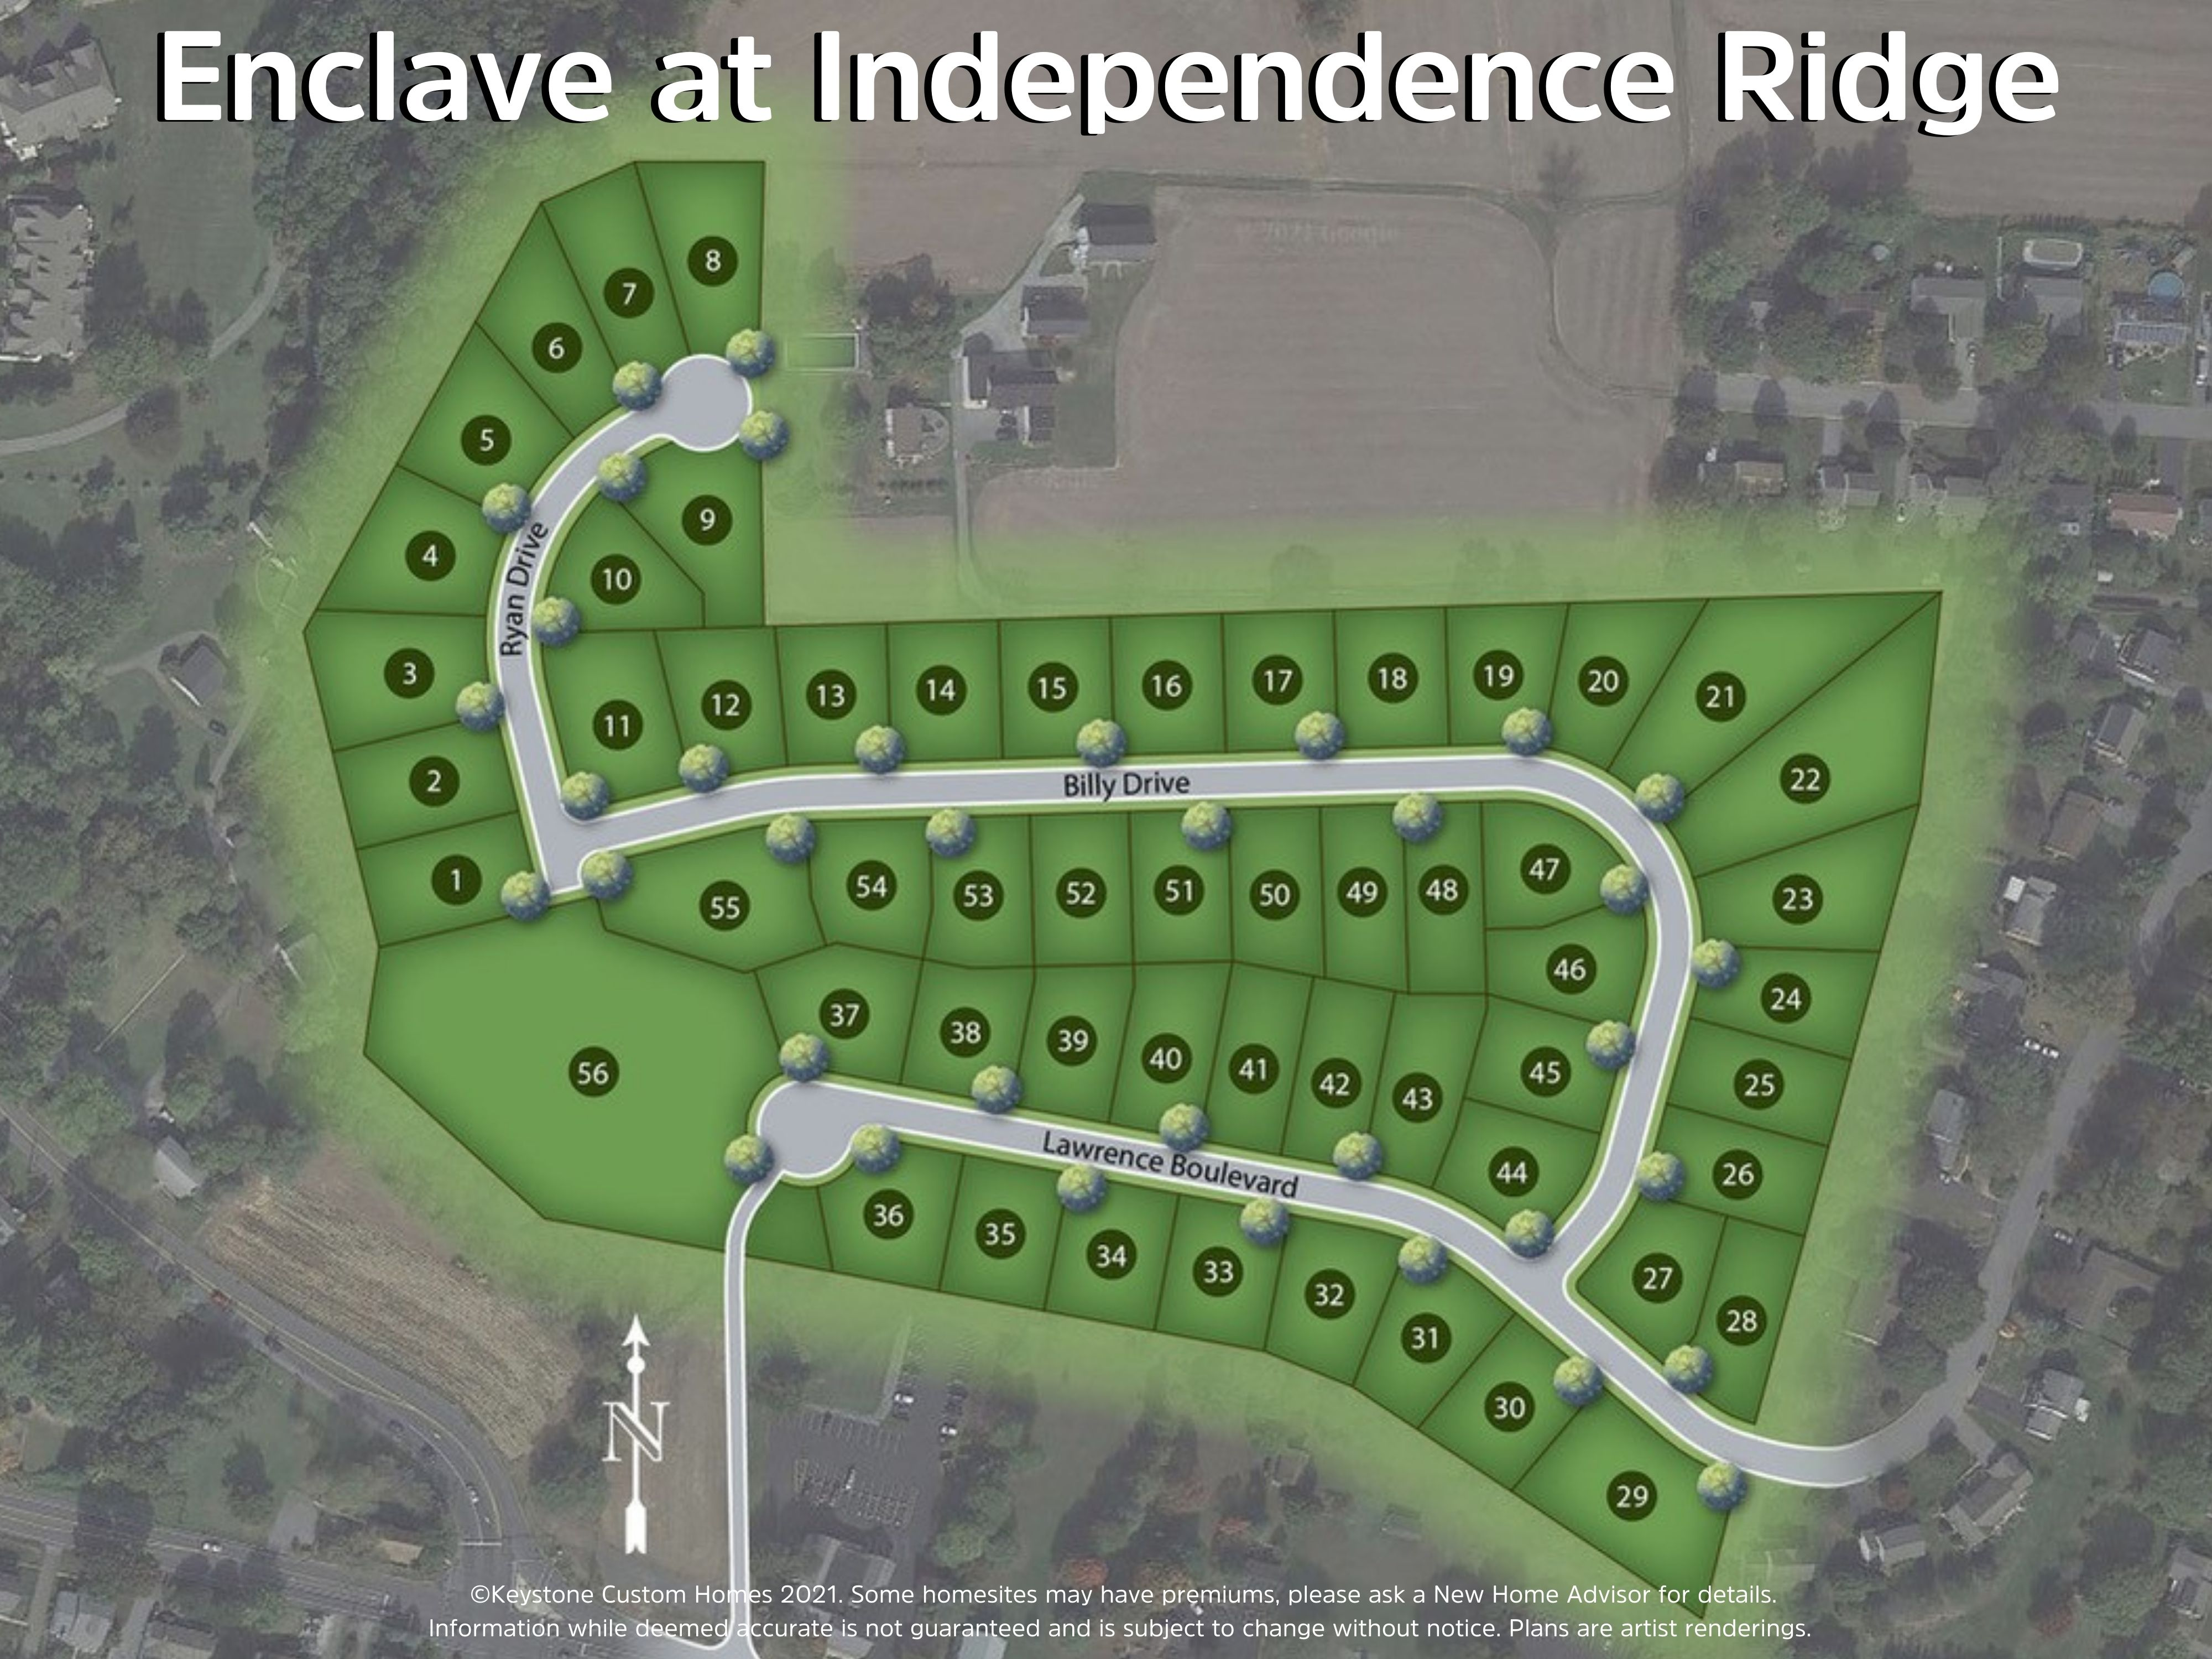 Enclave at Independence Ridge Lot Map Background